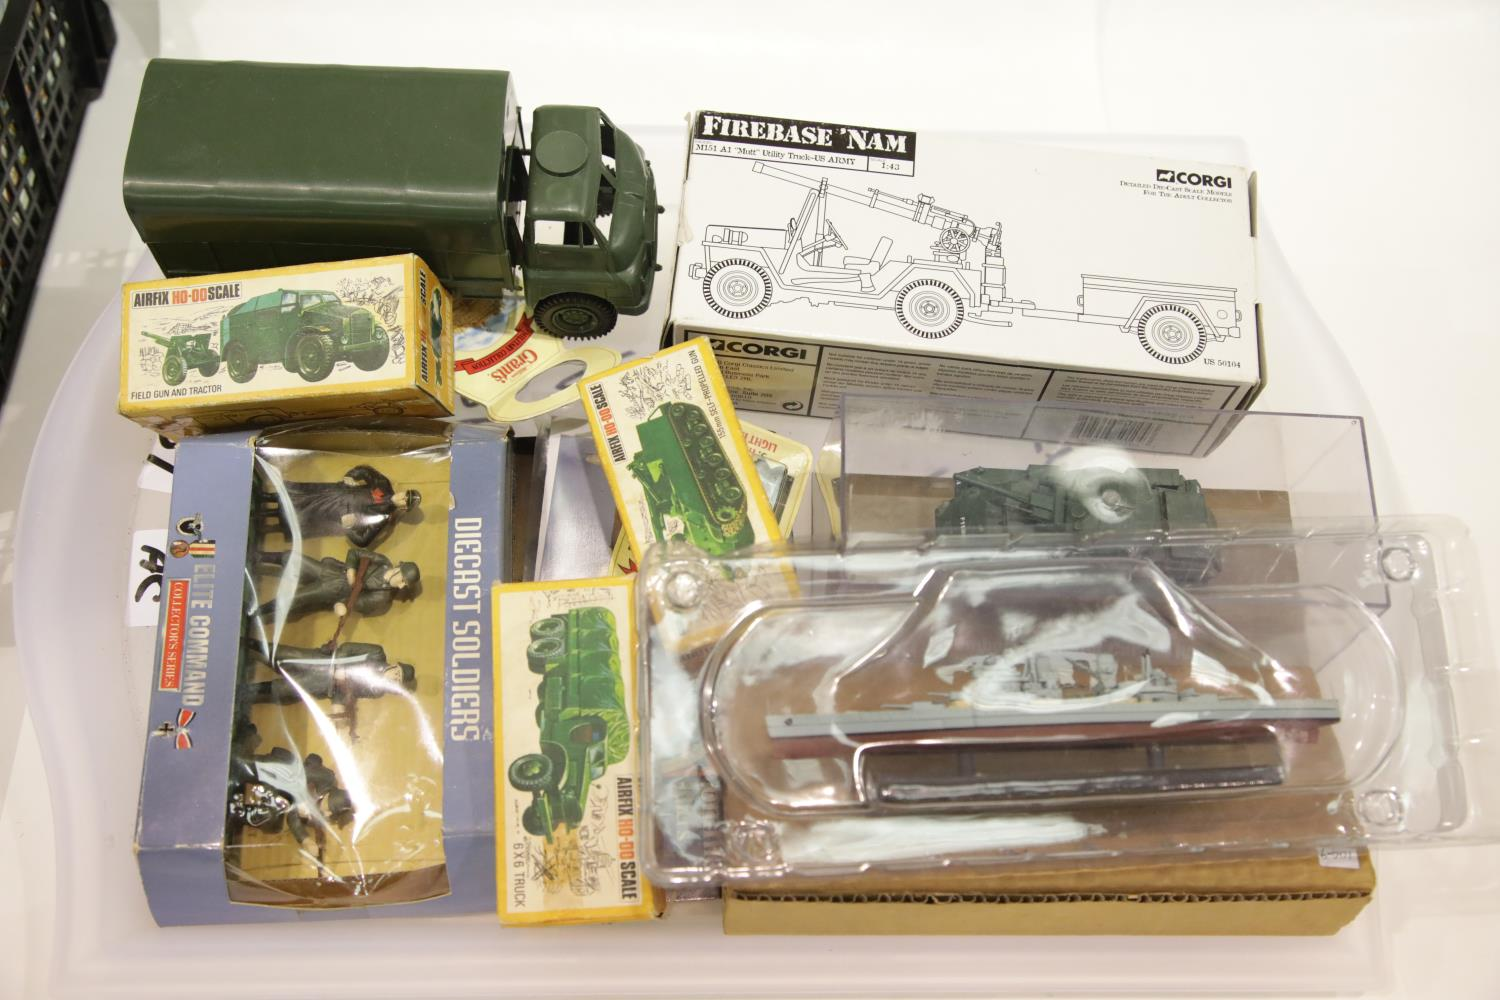 Lot 680 - Military related: Corgi US50104 Mutt Utility and trailer, Elite Command soldiers, Humber armoured